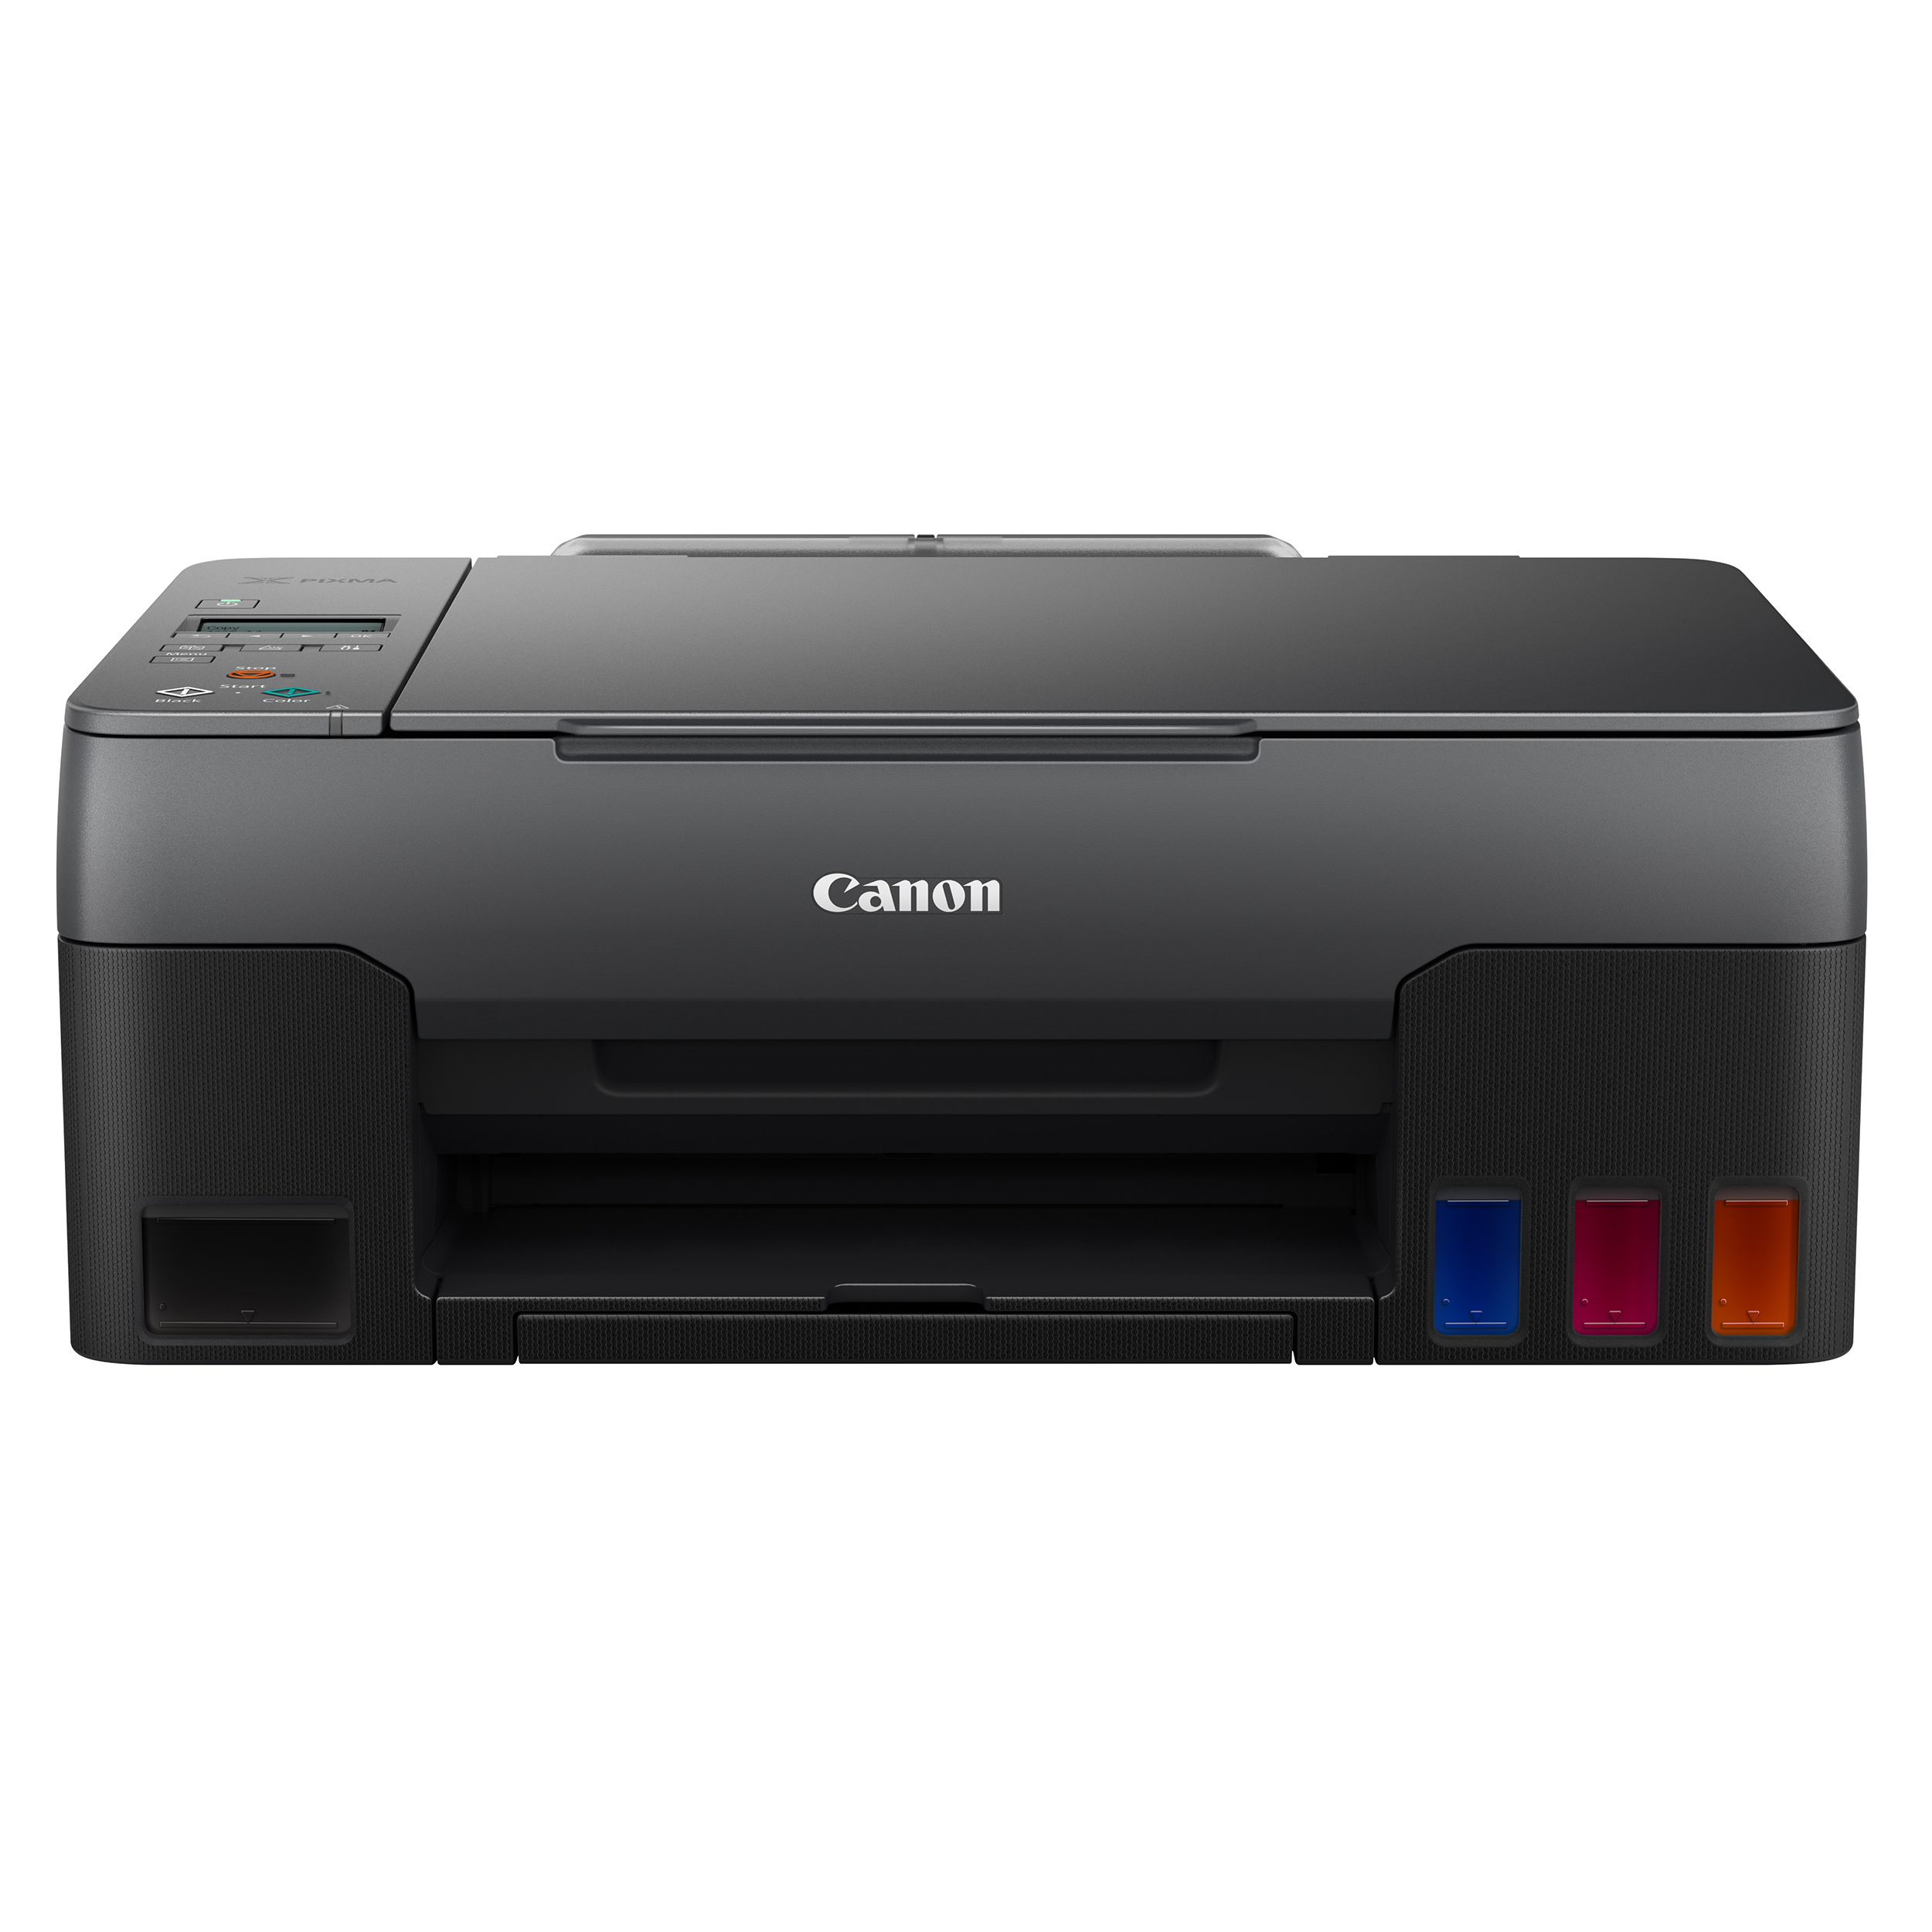 Canon Pixma Color All-in-One Ink Tank Printer (Borderless Printing, G2020, Black)_1